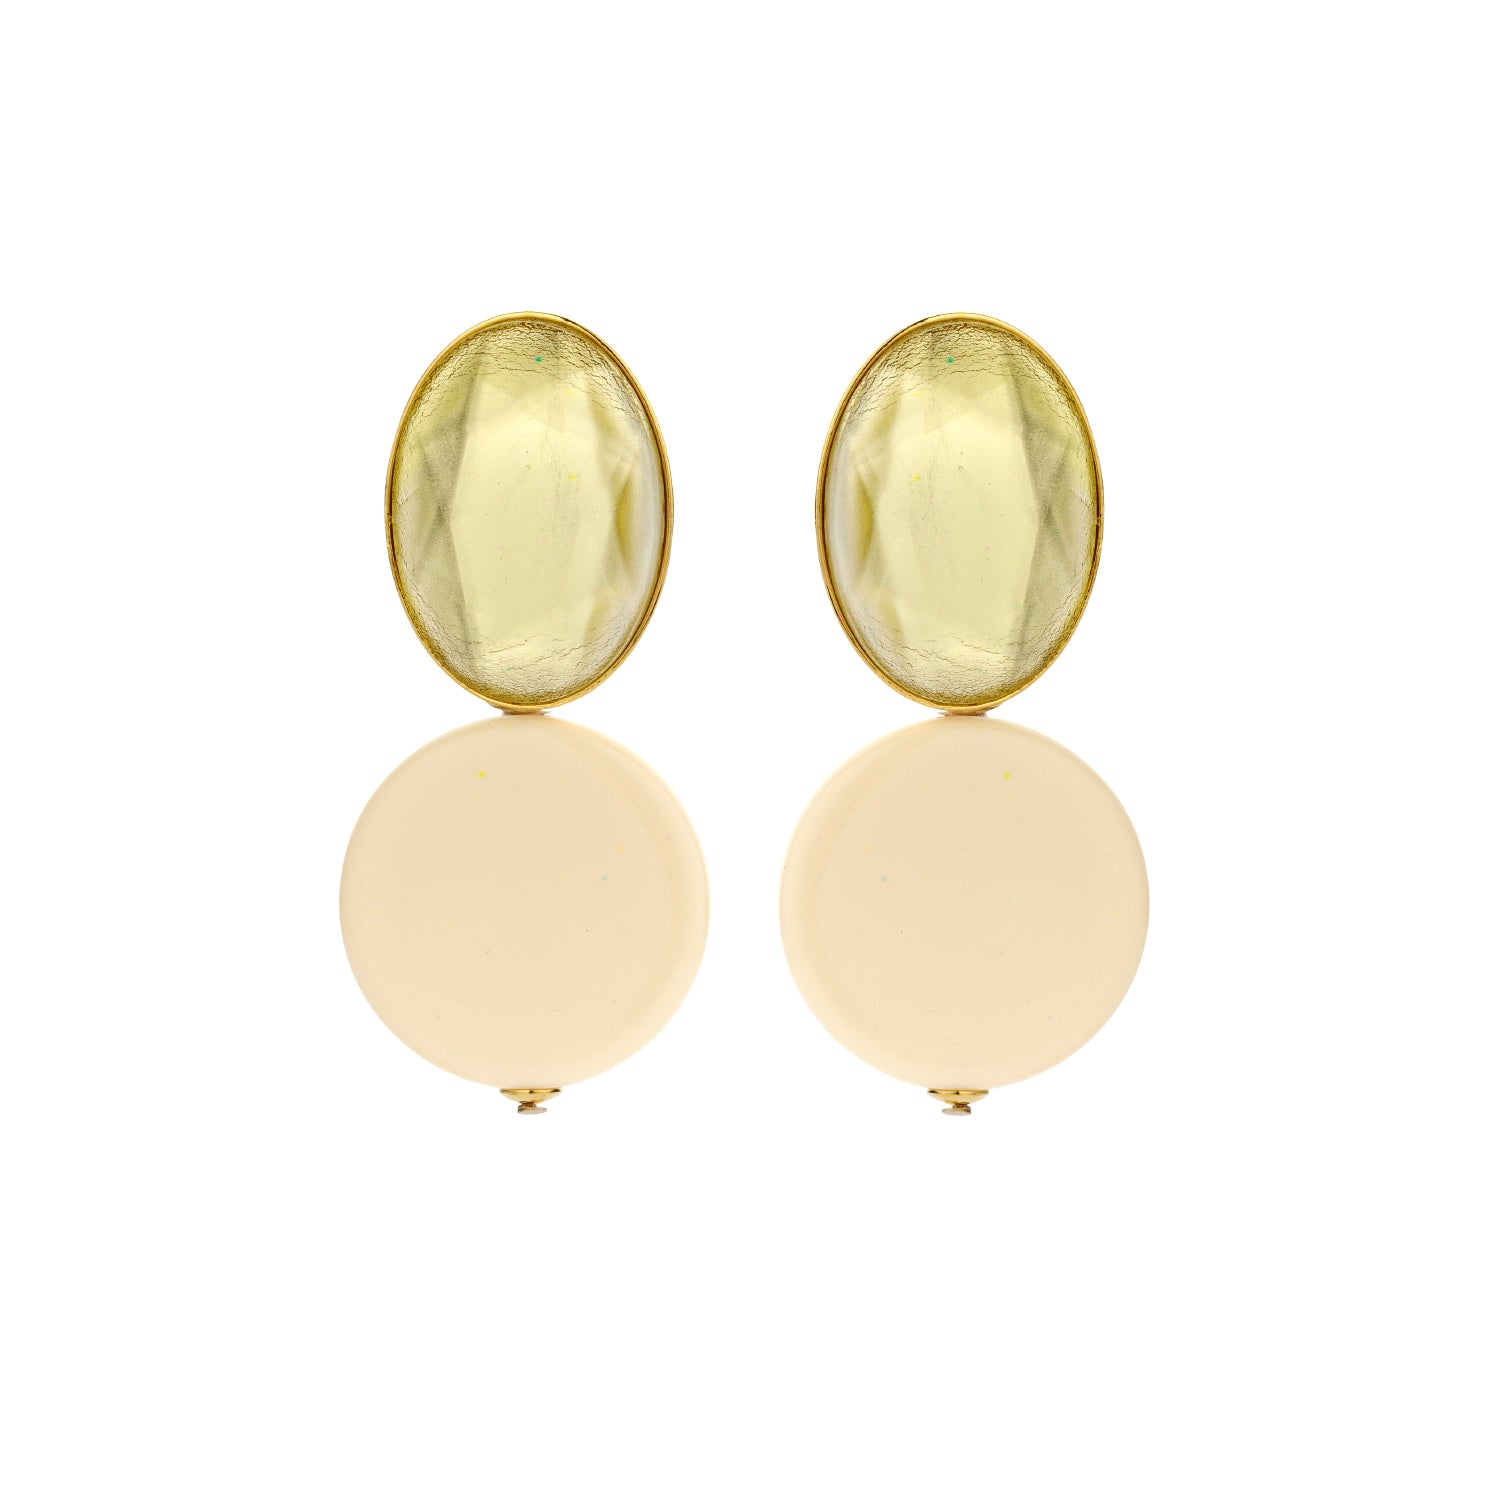 Mona ecru earrings - Souvenirs de Pomme